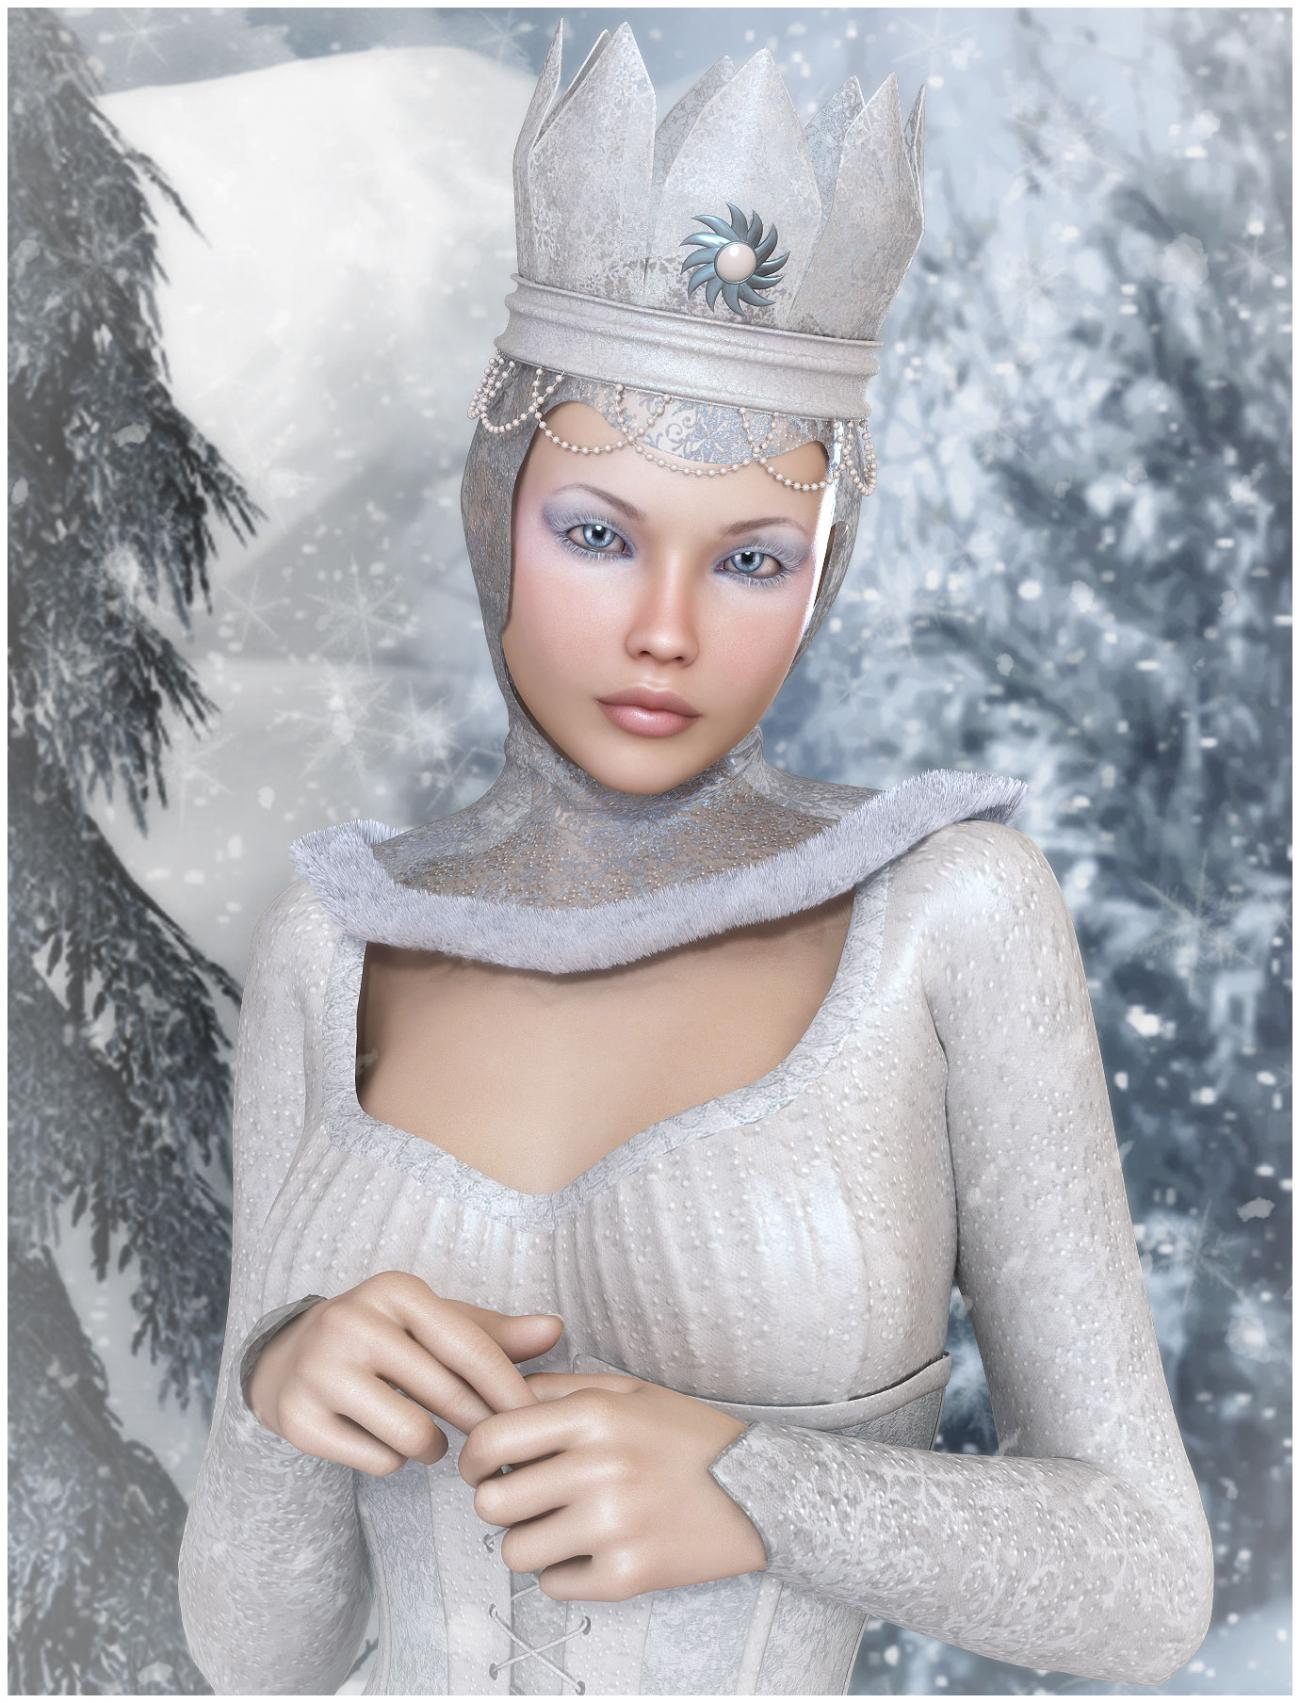 Chrystalia the Snow Queen